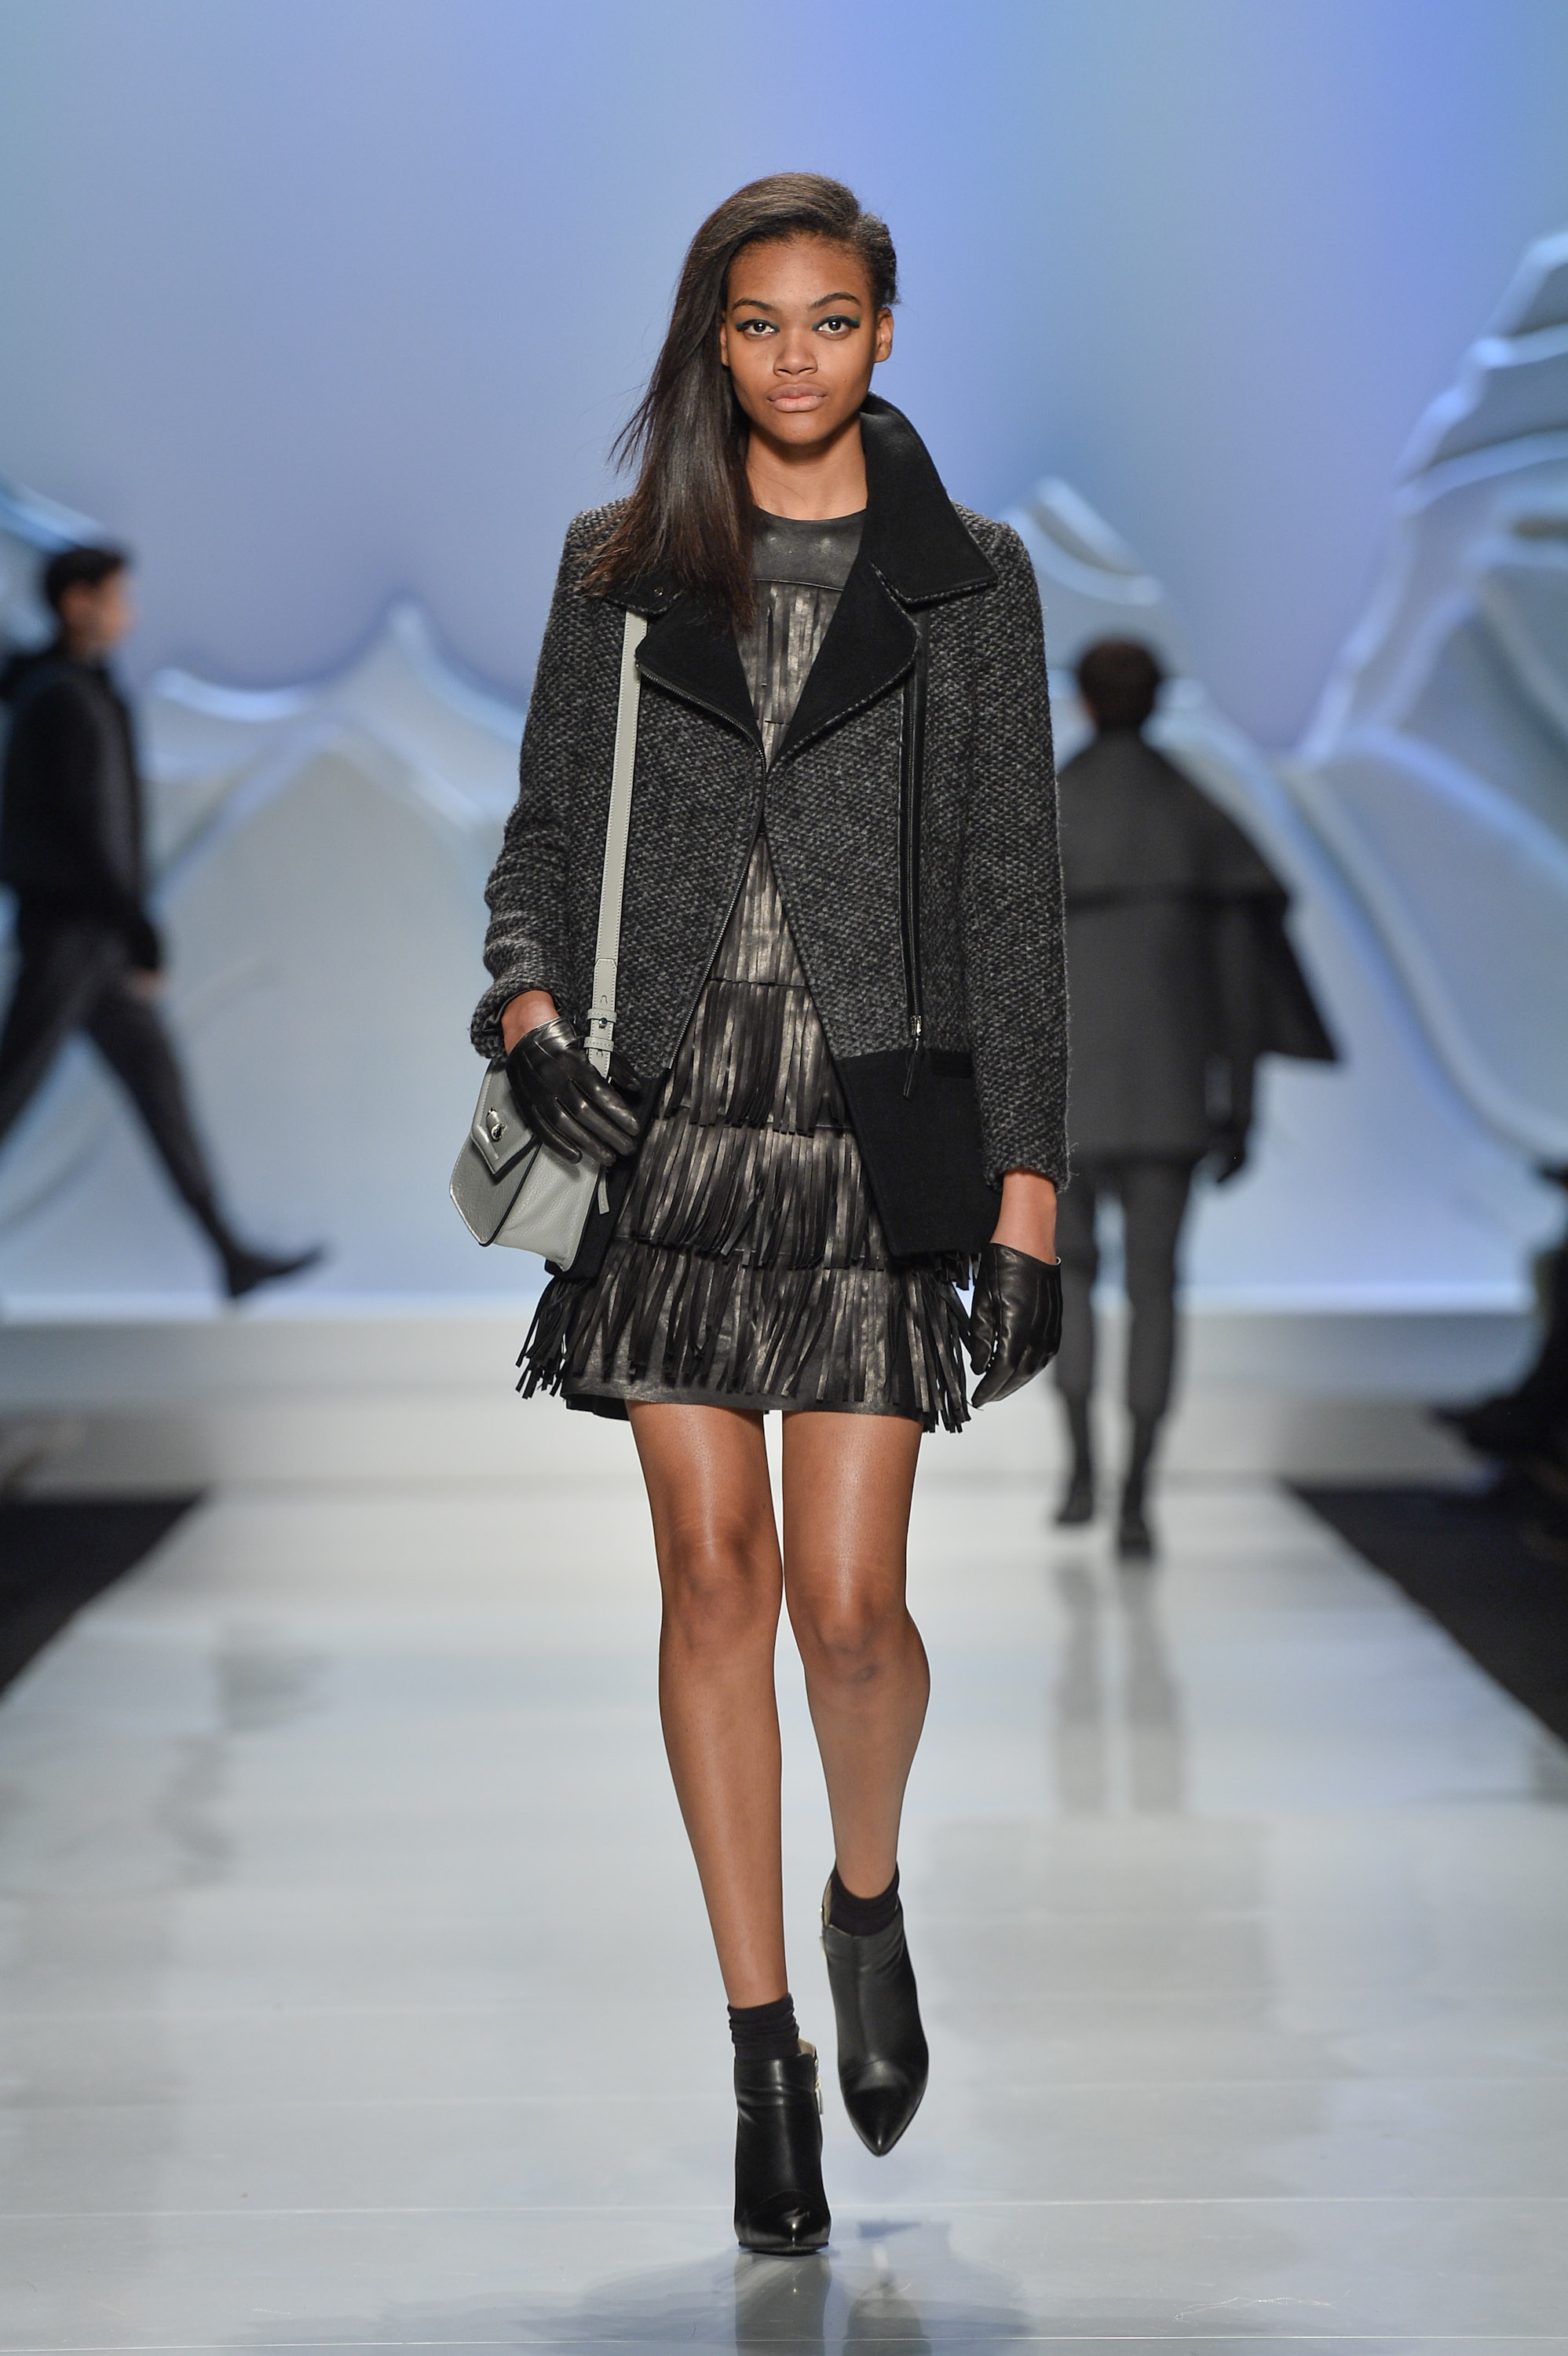 My Top 5 Fall 2015 Fashion Trends From WMCFW